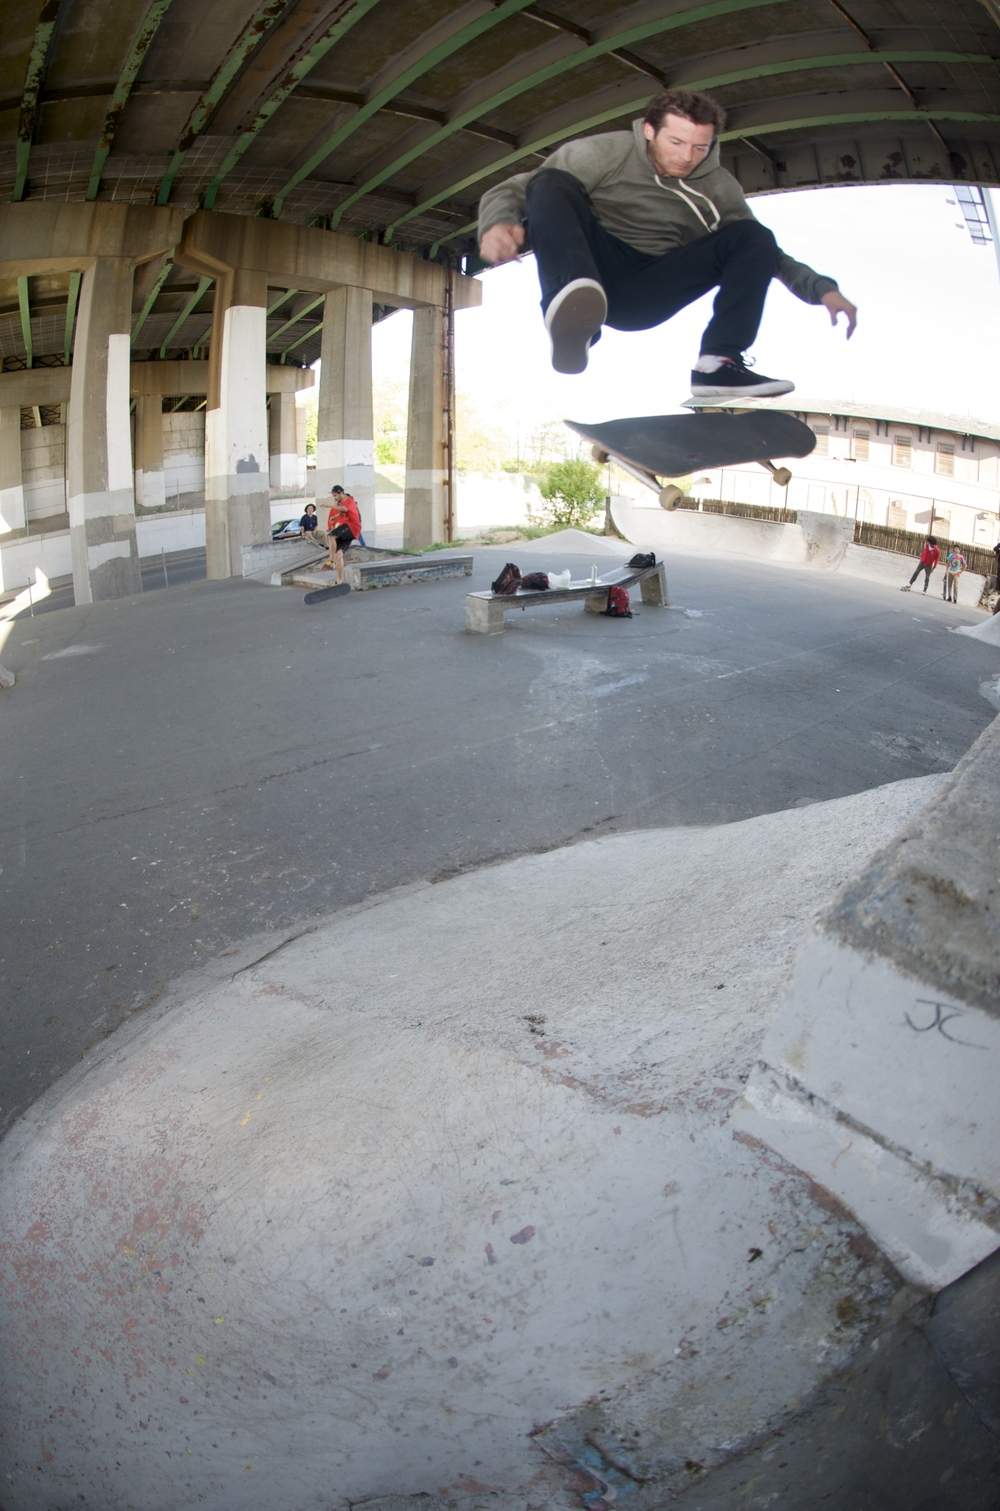 CHRIS 'COOKIE' COLBURN / KICKFLIP / NB, MA